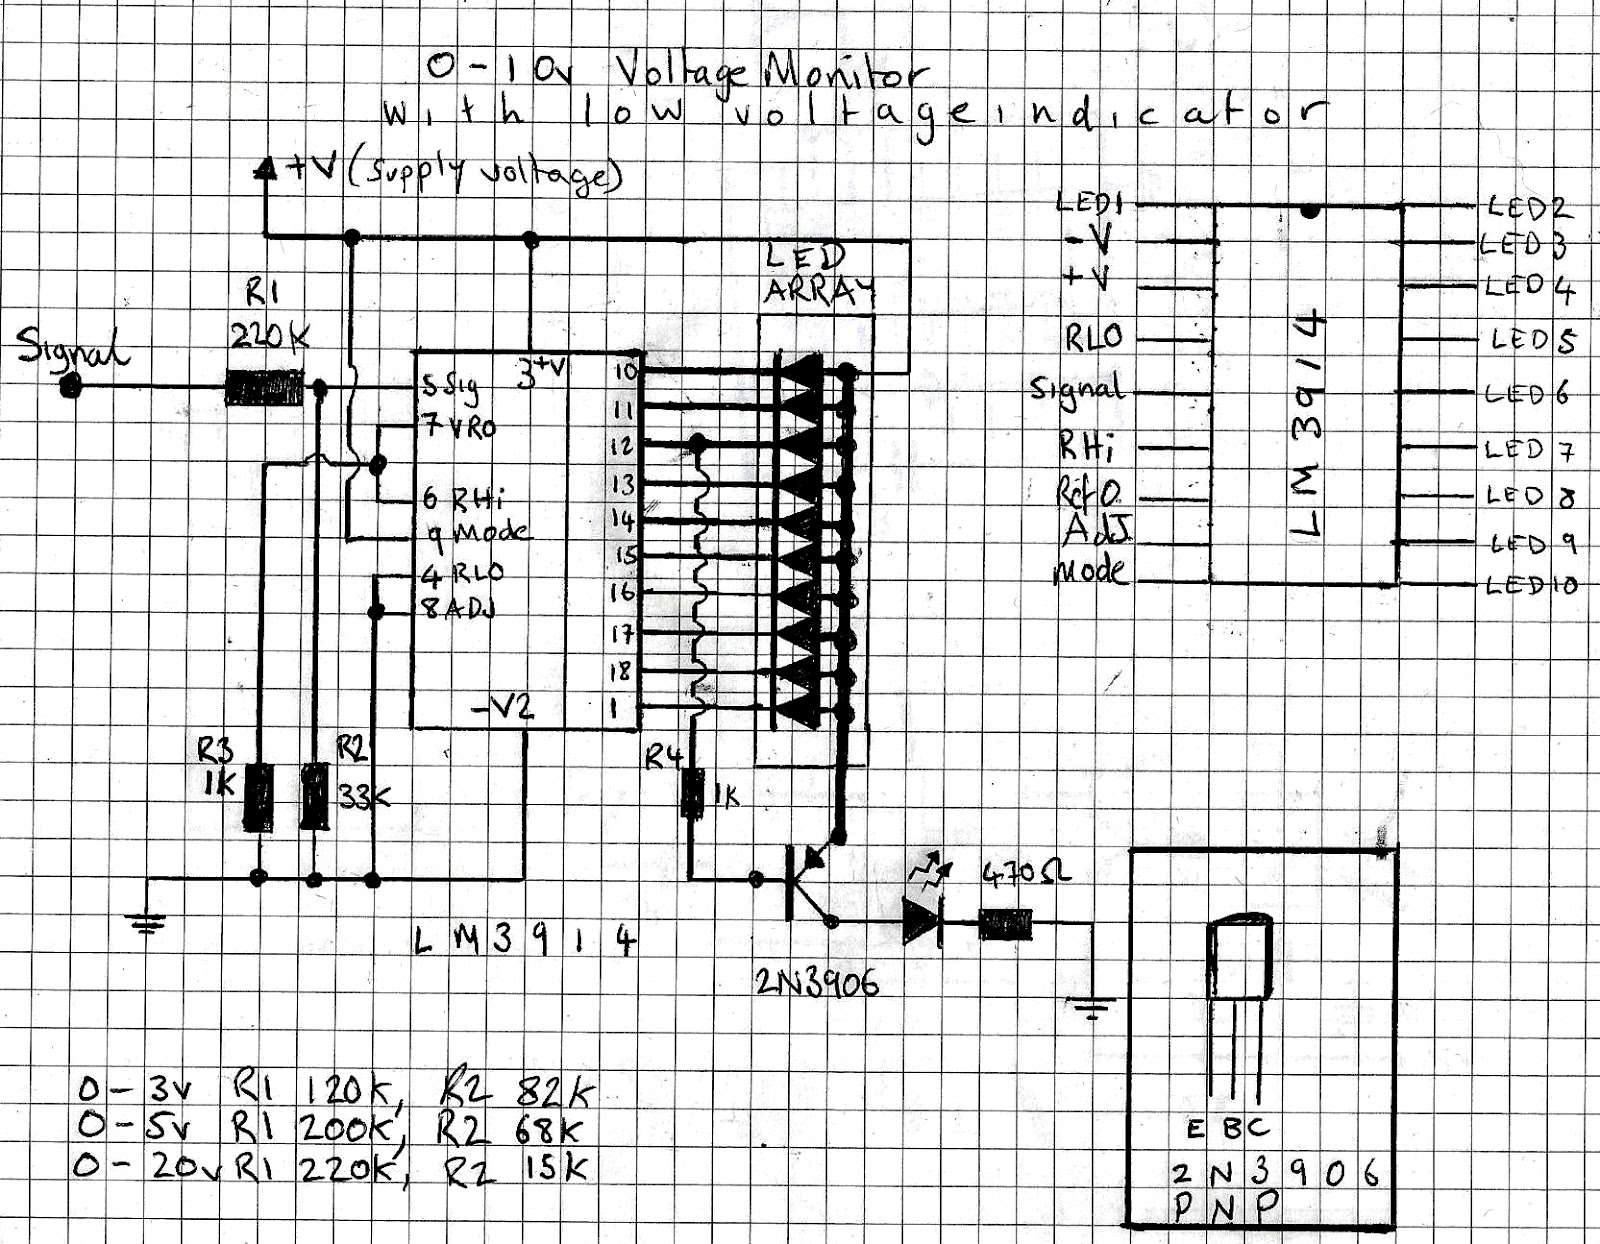 Paul In The Lab Lm3914 Voltage Monitor Stripboard Veroboard Layout Basic Circuit For